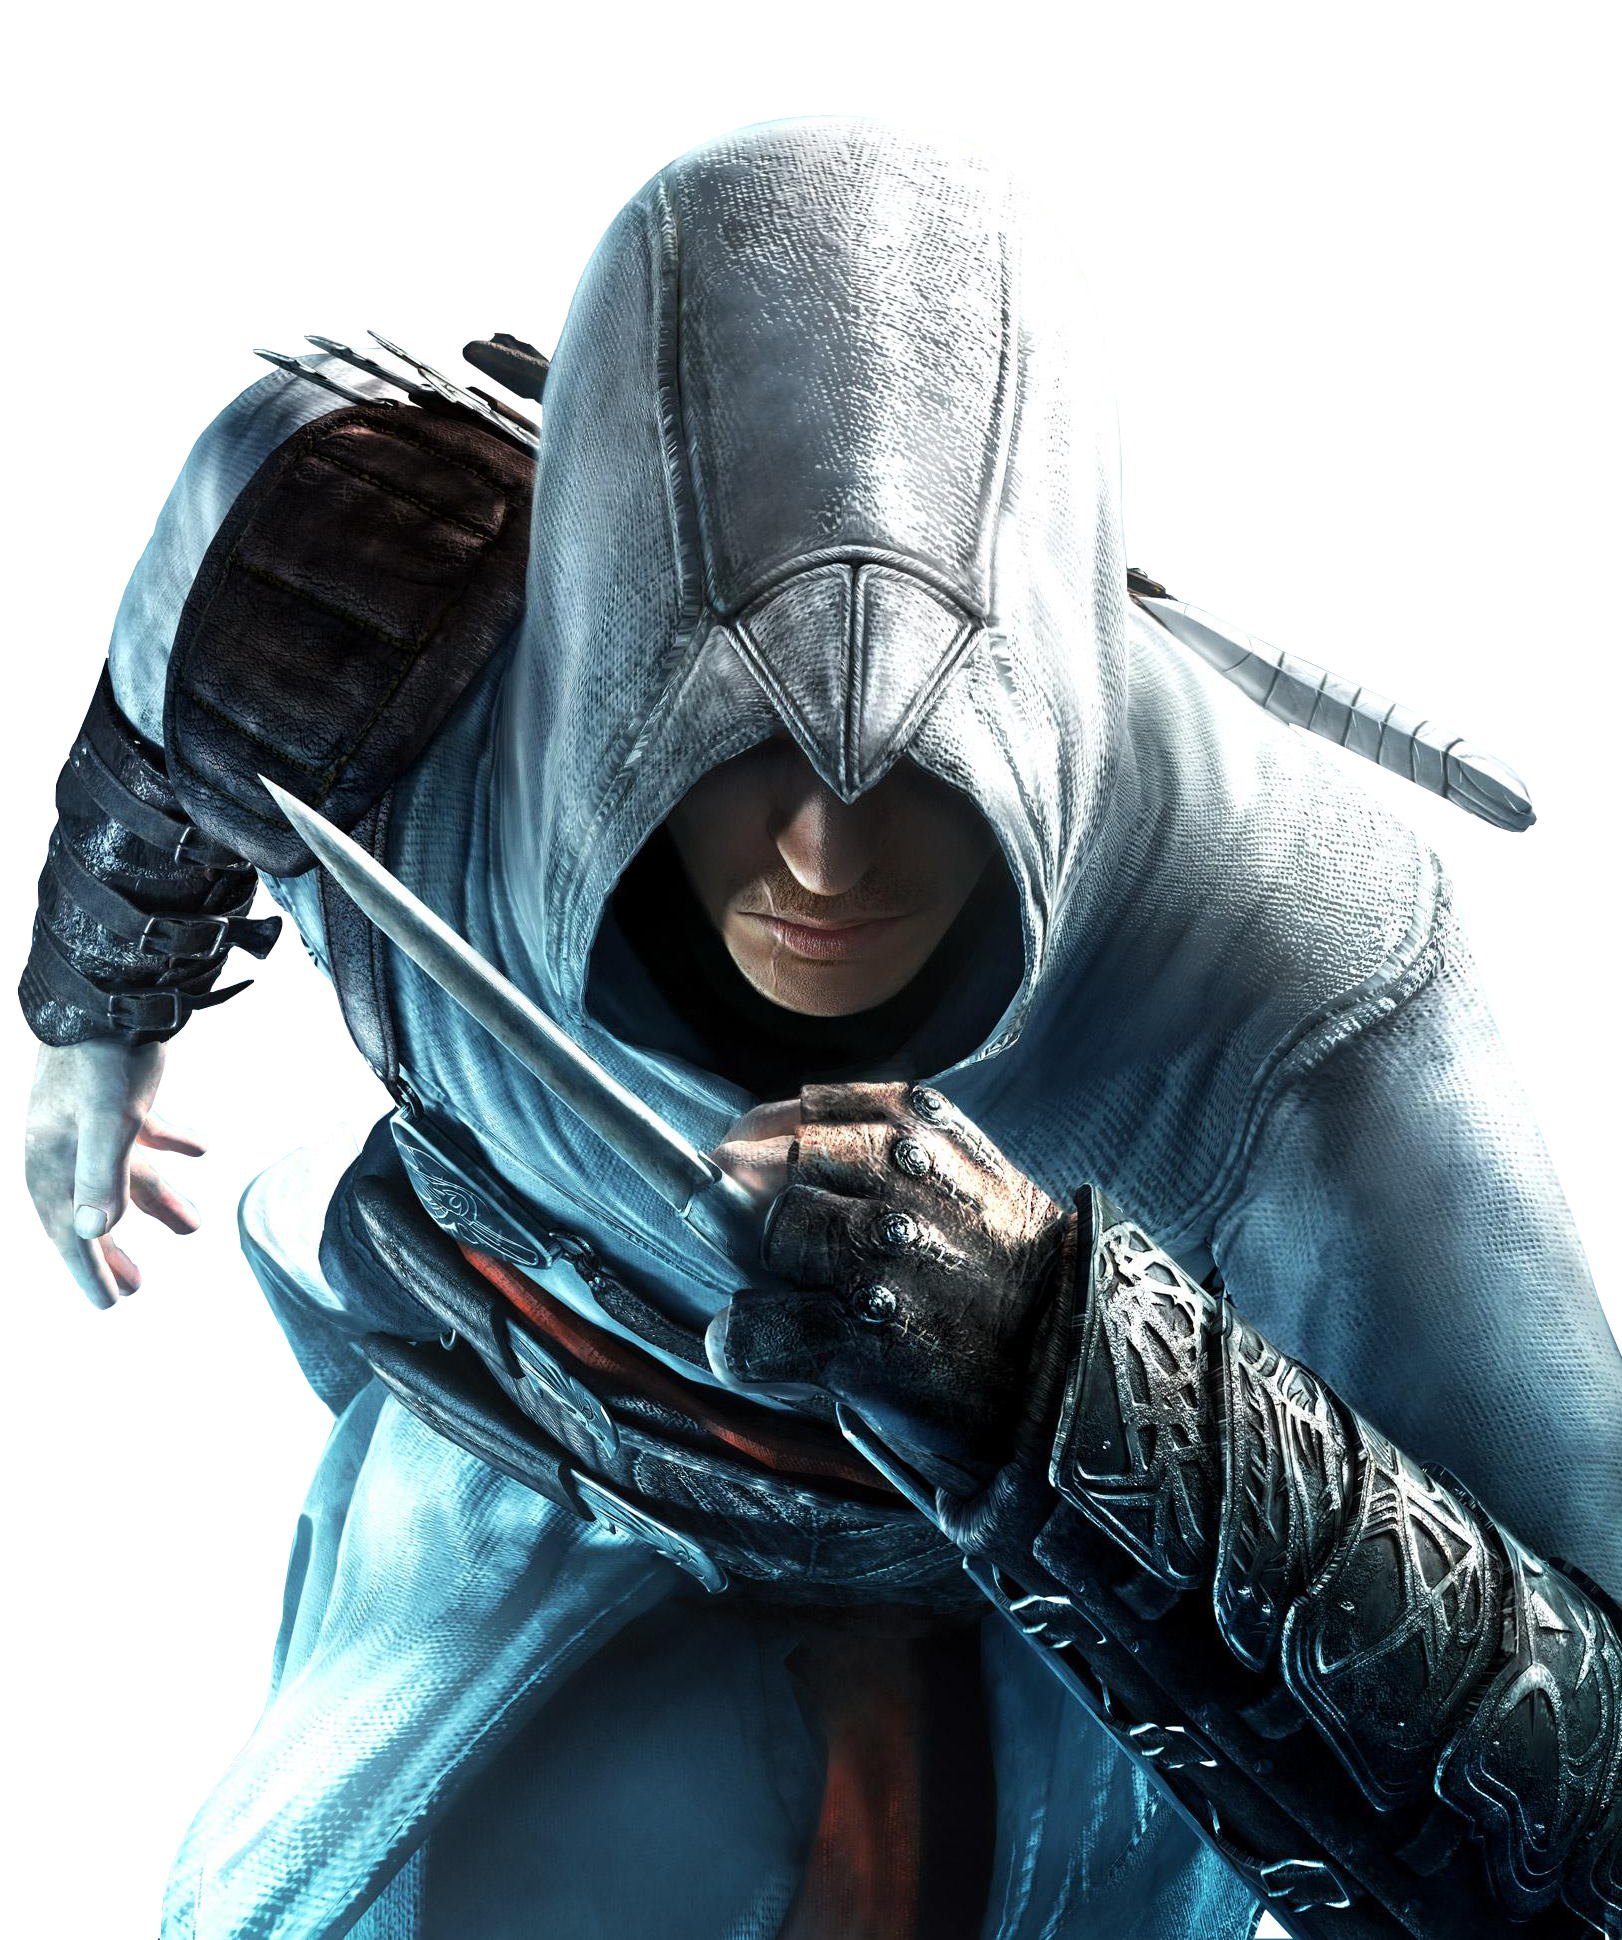 Assassins Creed Altair.png - Assassins Creed, Transparent background PNG HD thumbnail